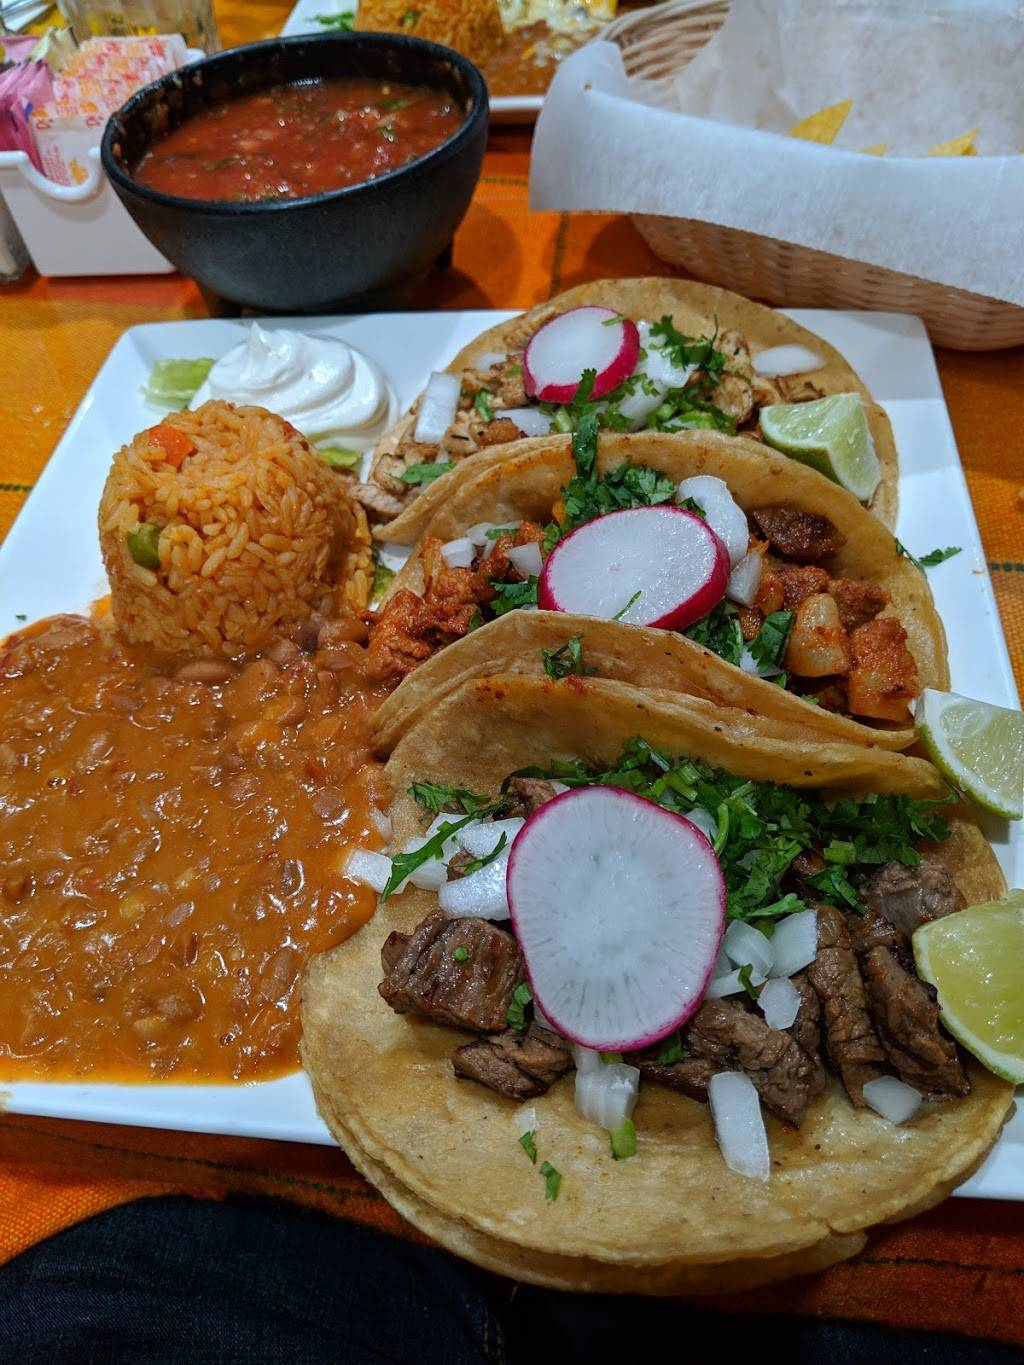 Chicali Mexican Grill   restaurant   12 W Main St, Somerville, NJ 08876, USA   9089472449 OR +1 908-947-2449